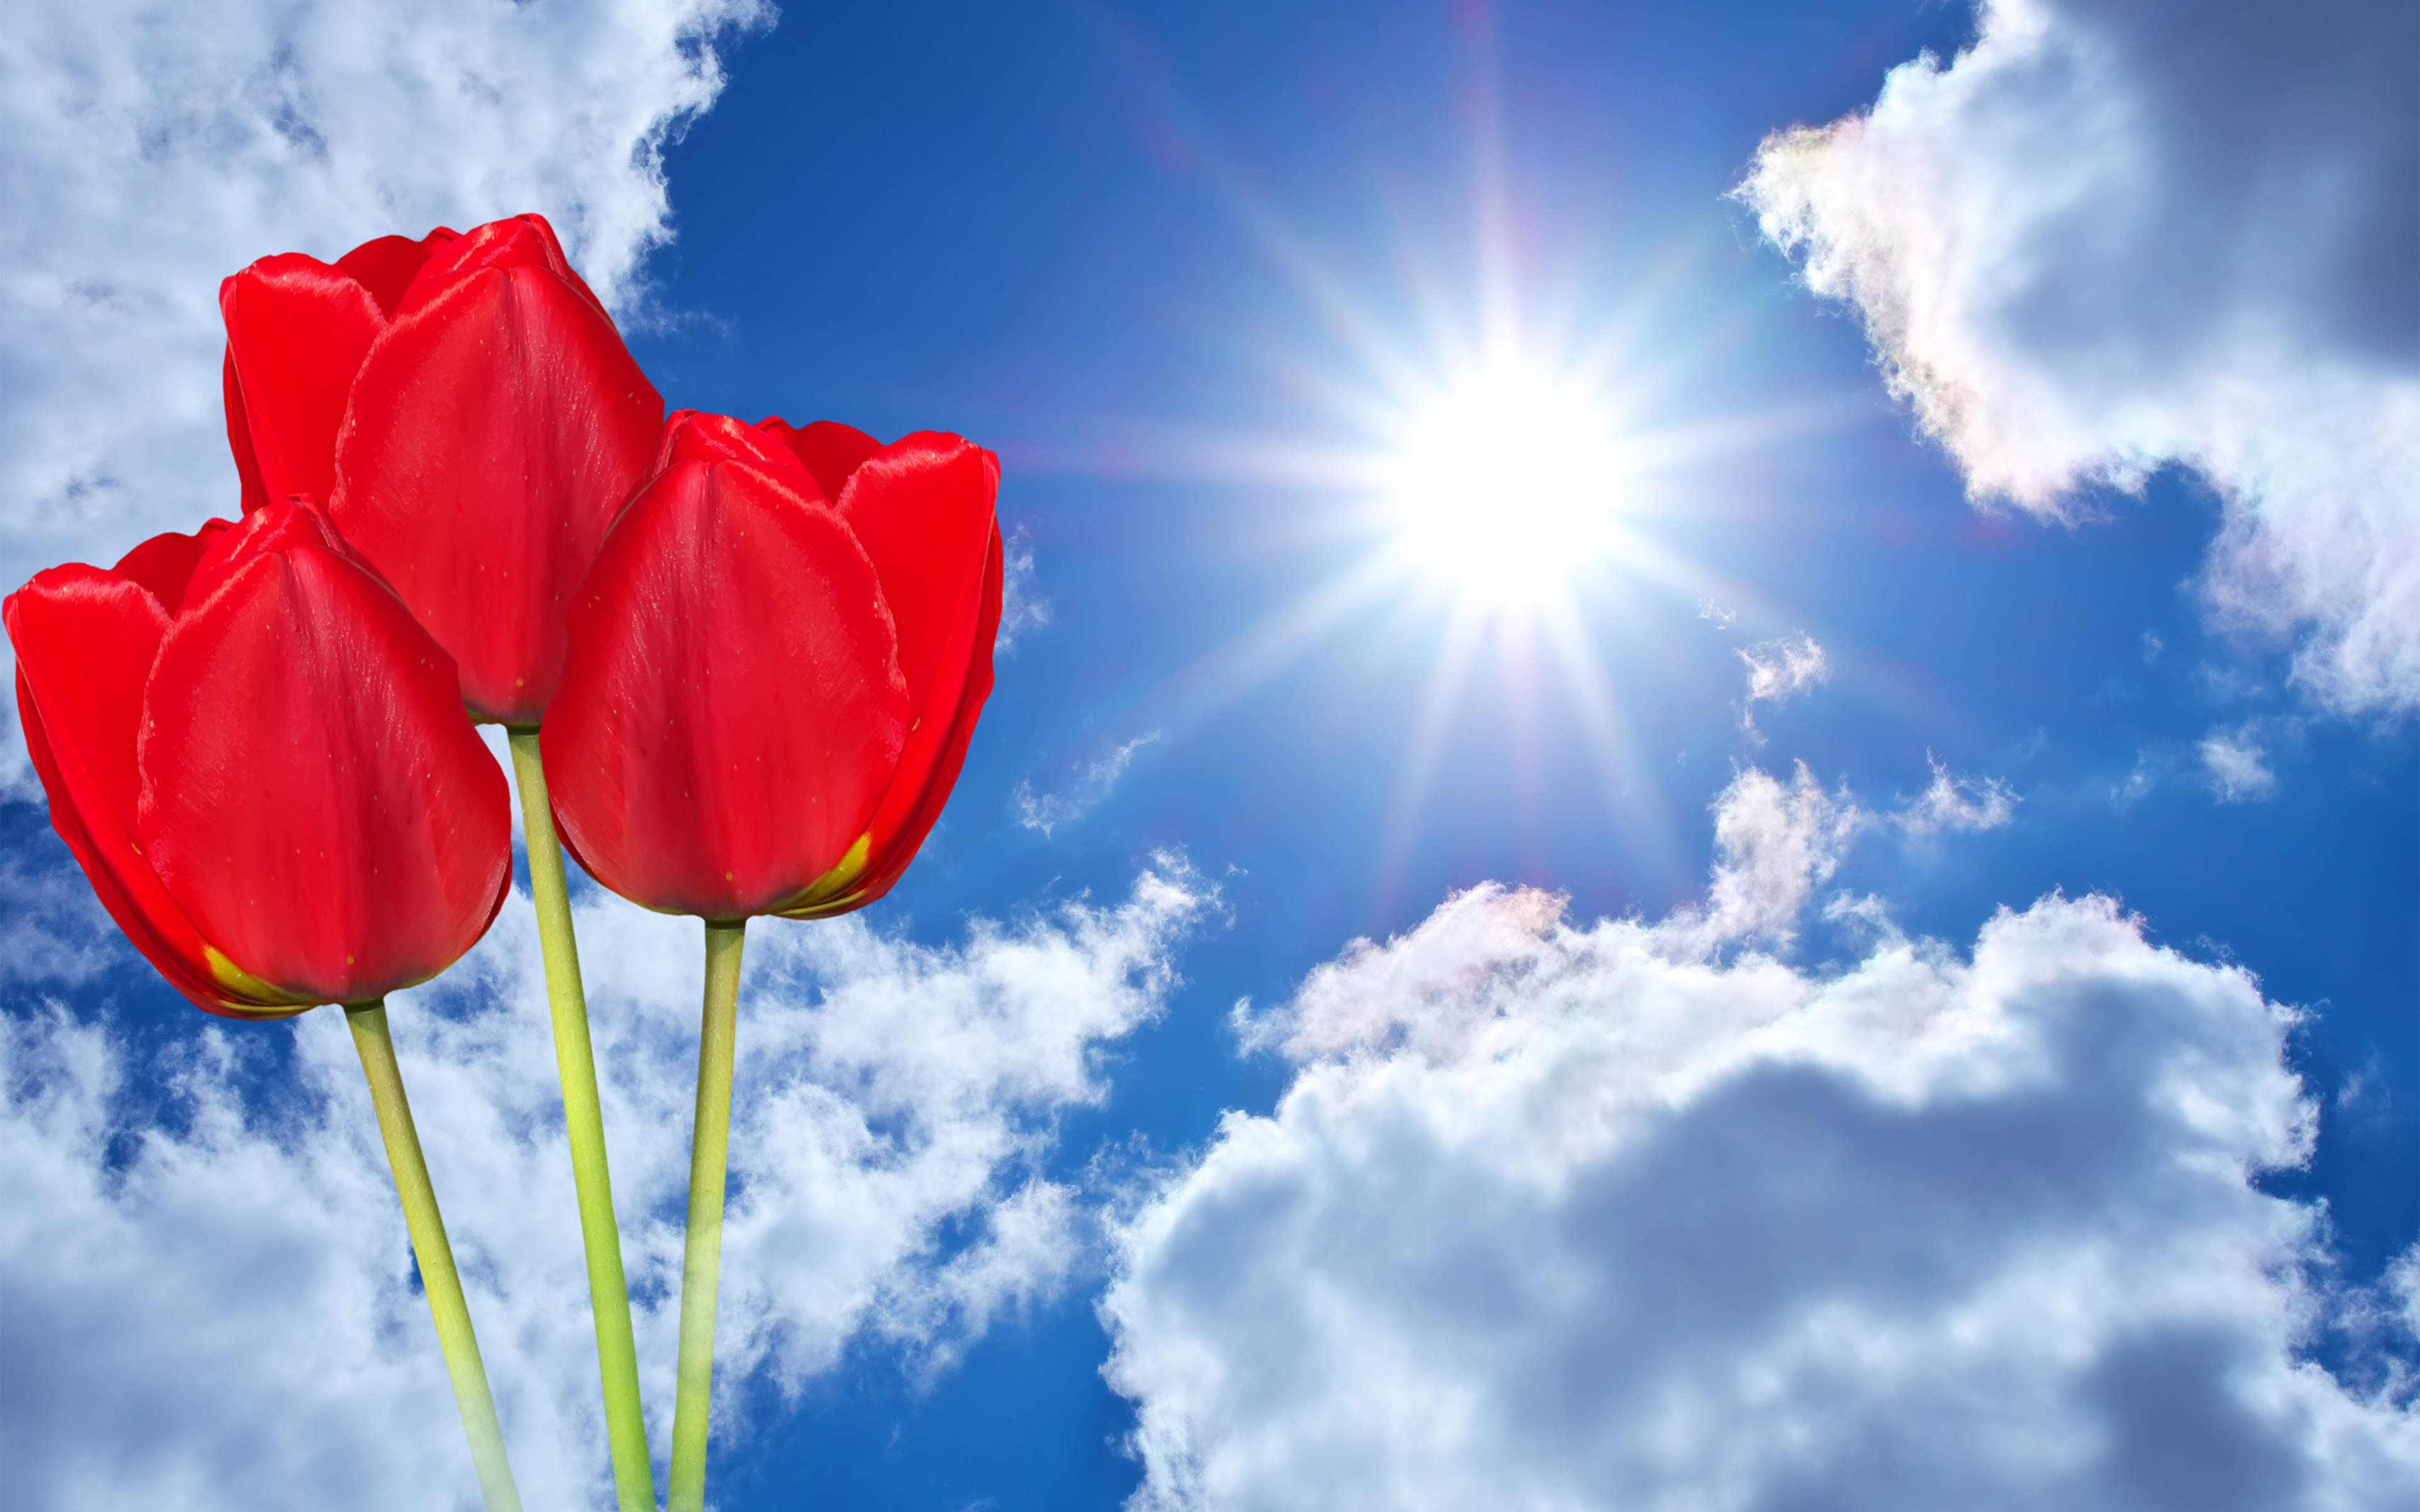 Pictures Sun Red Tulips Sky Flowers Three 3 Clouds 3840x2400 tulip flower